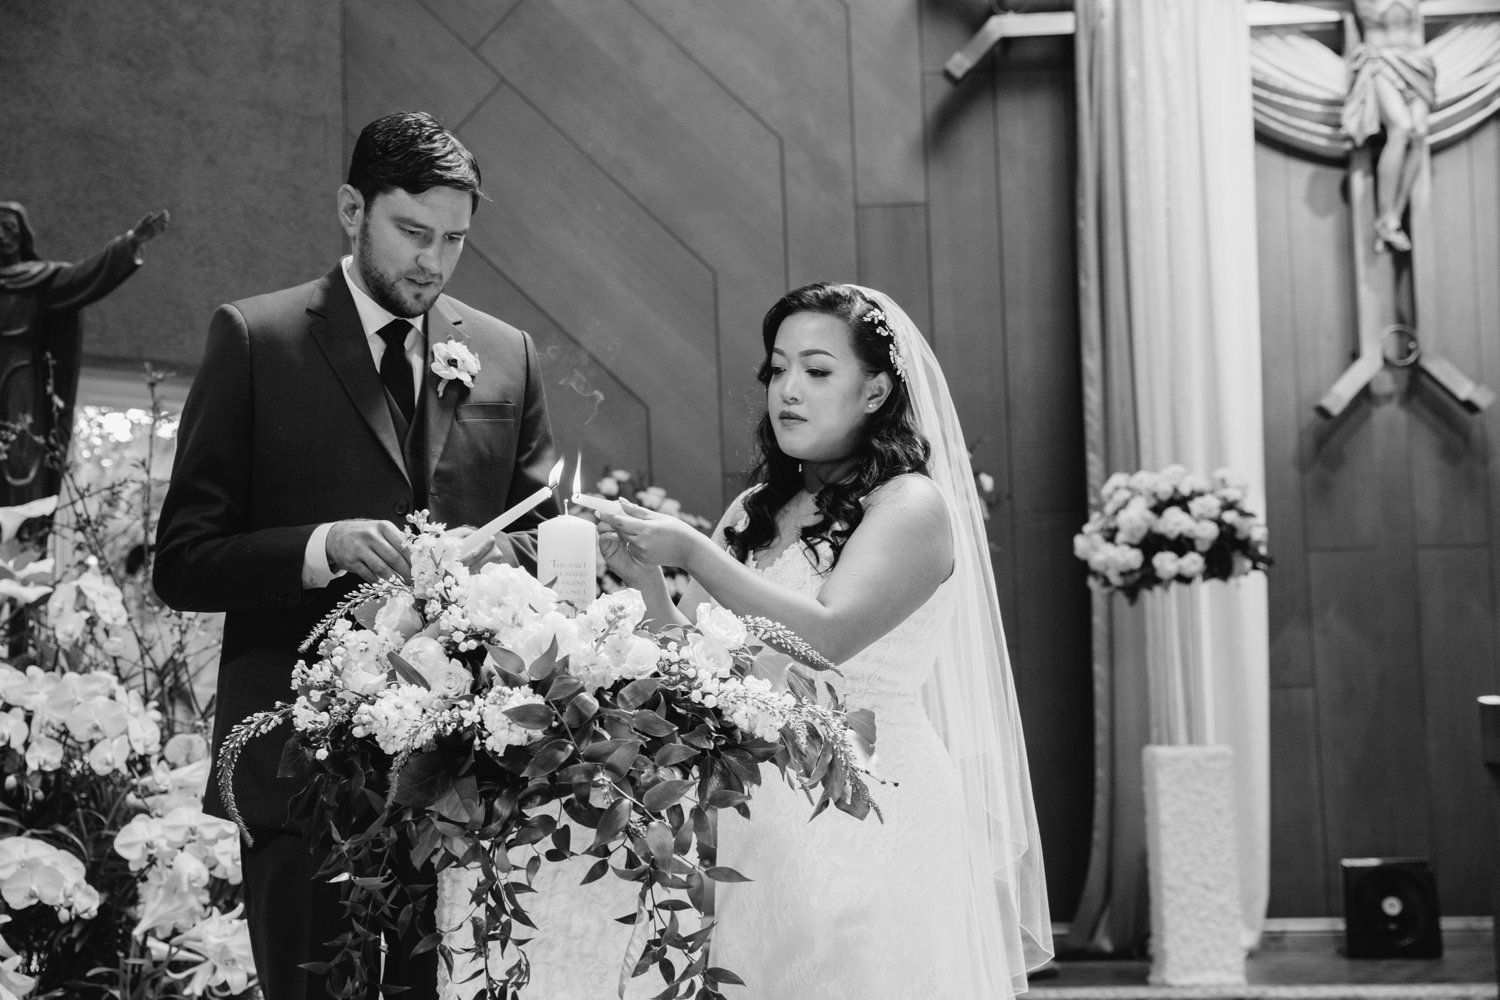 Irvine Wedding Kevin Le Vu Photography- 62.jpg